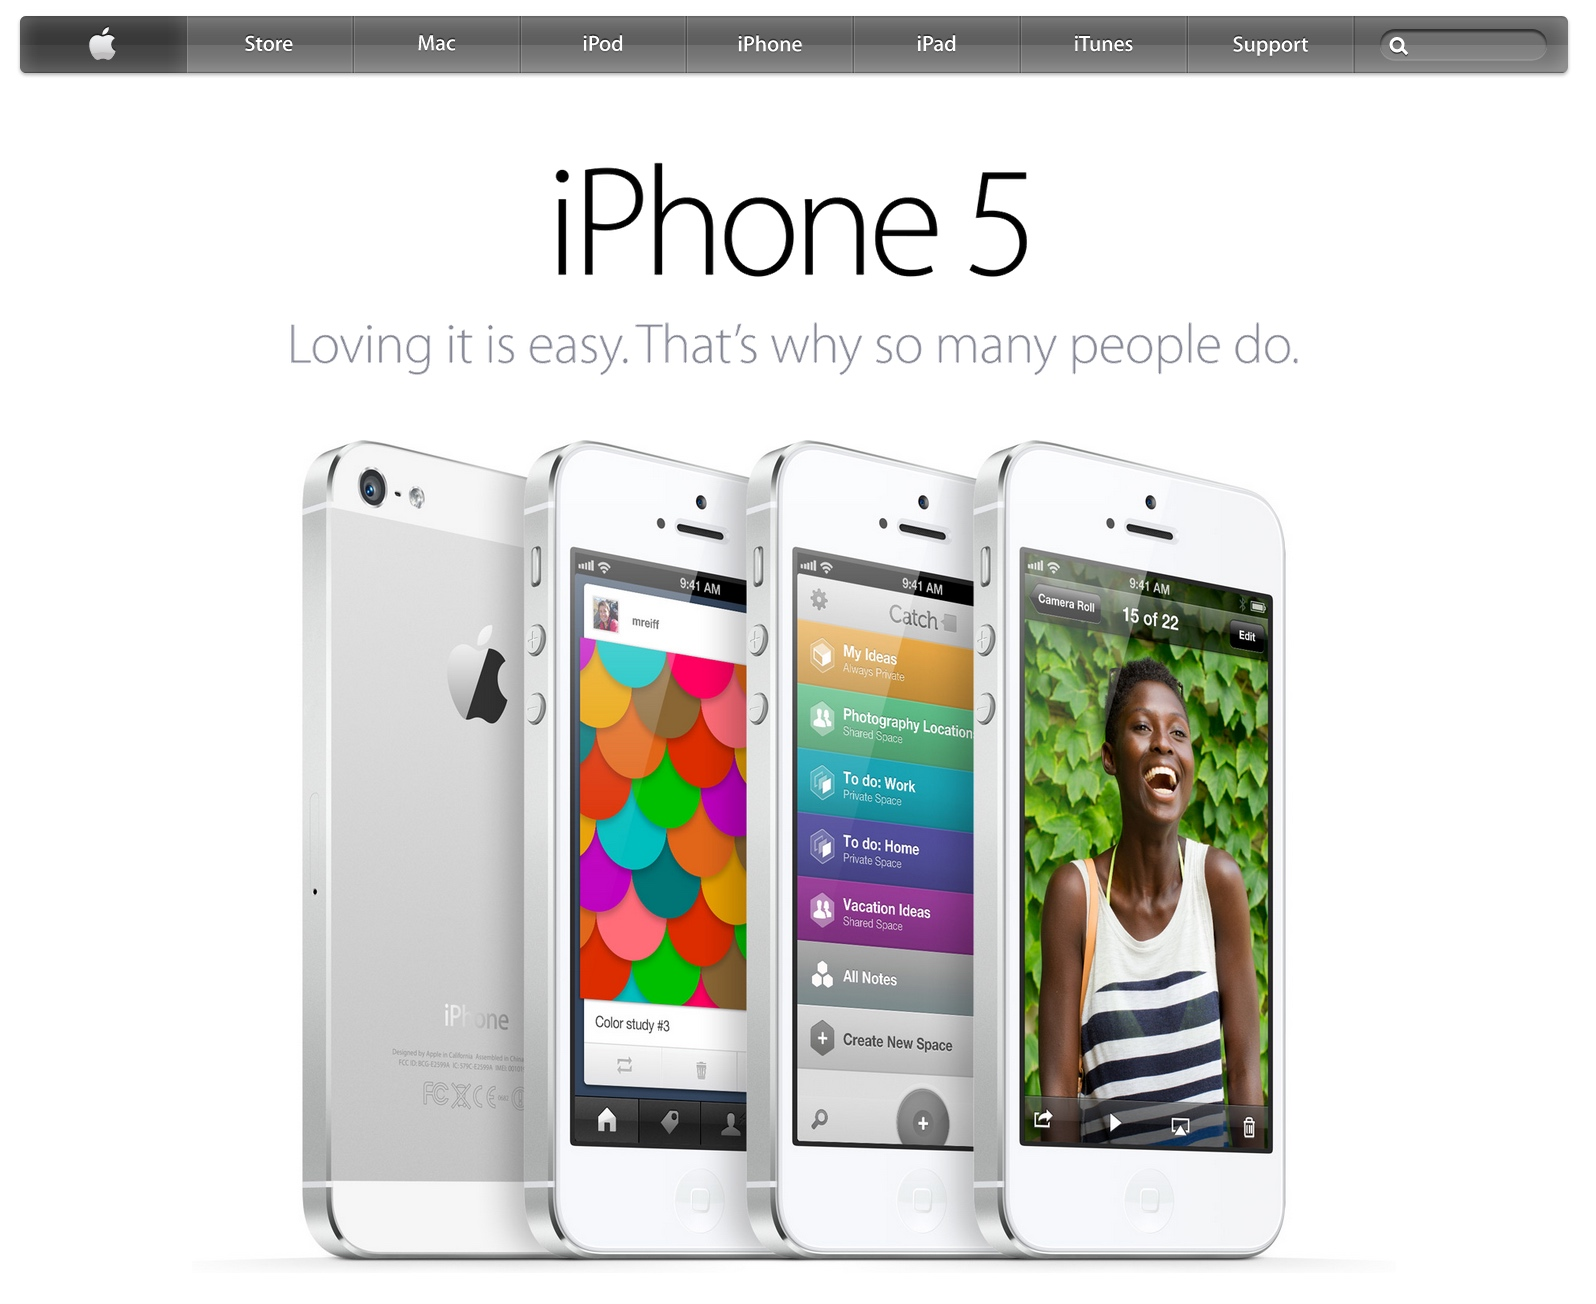 Apple homepage showing iPhone 5 (2013)